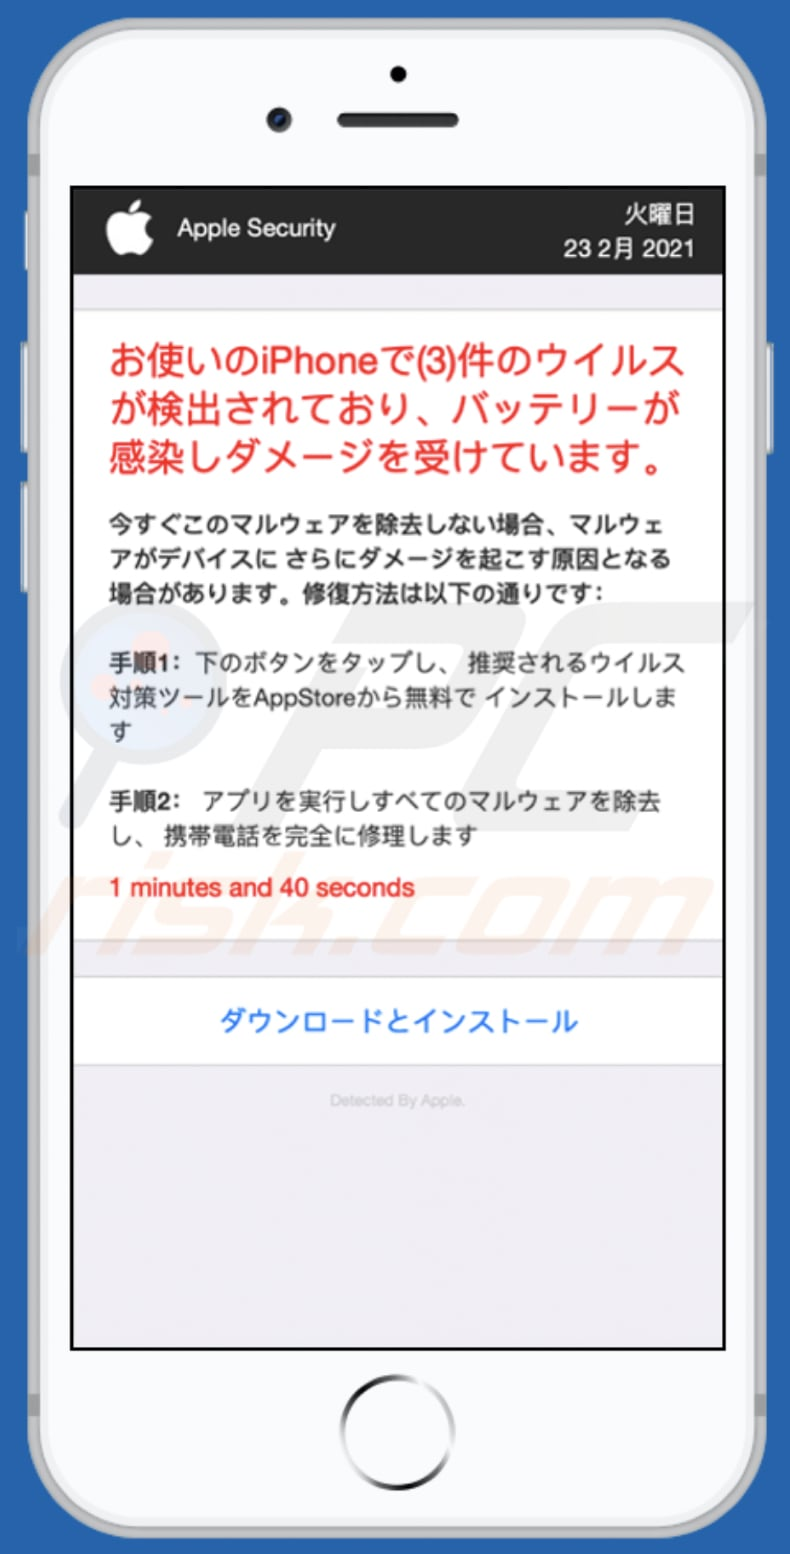 app-department.report pop-up scam japanese variant background